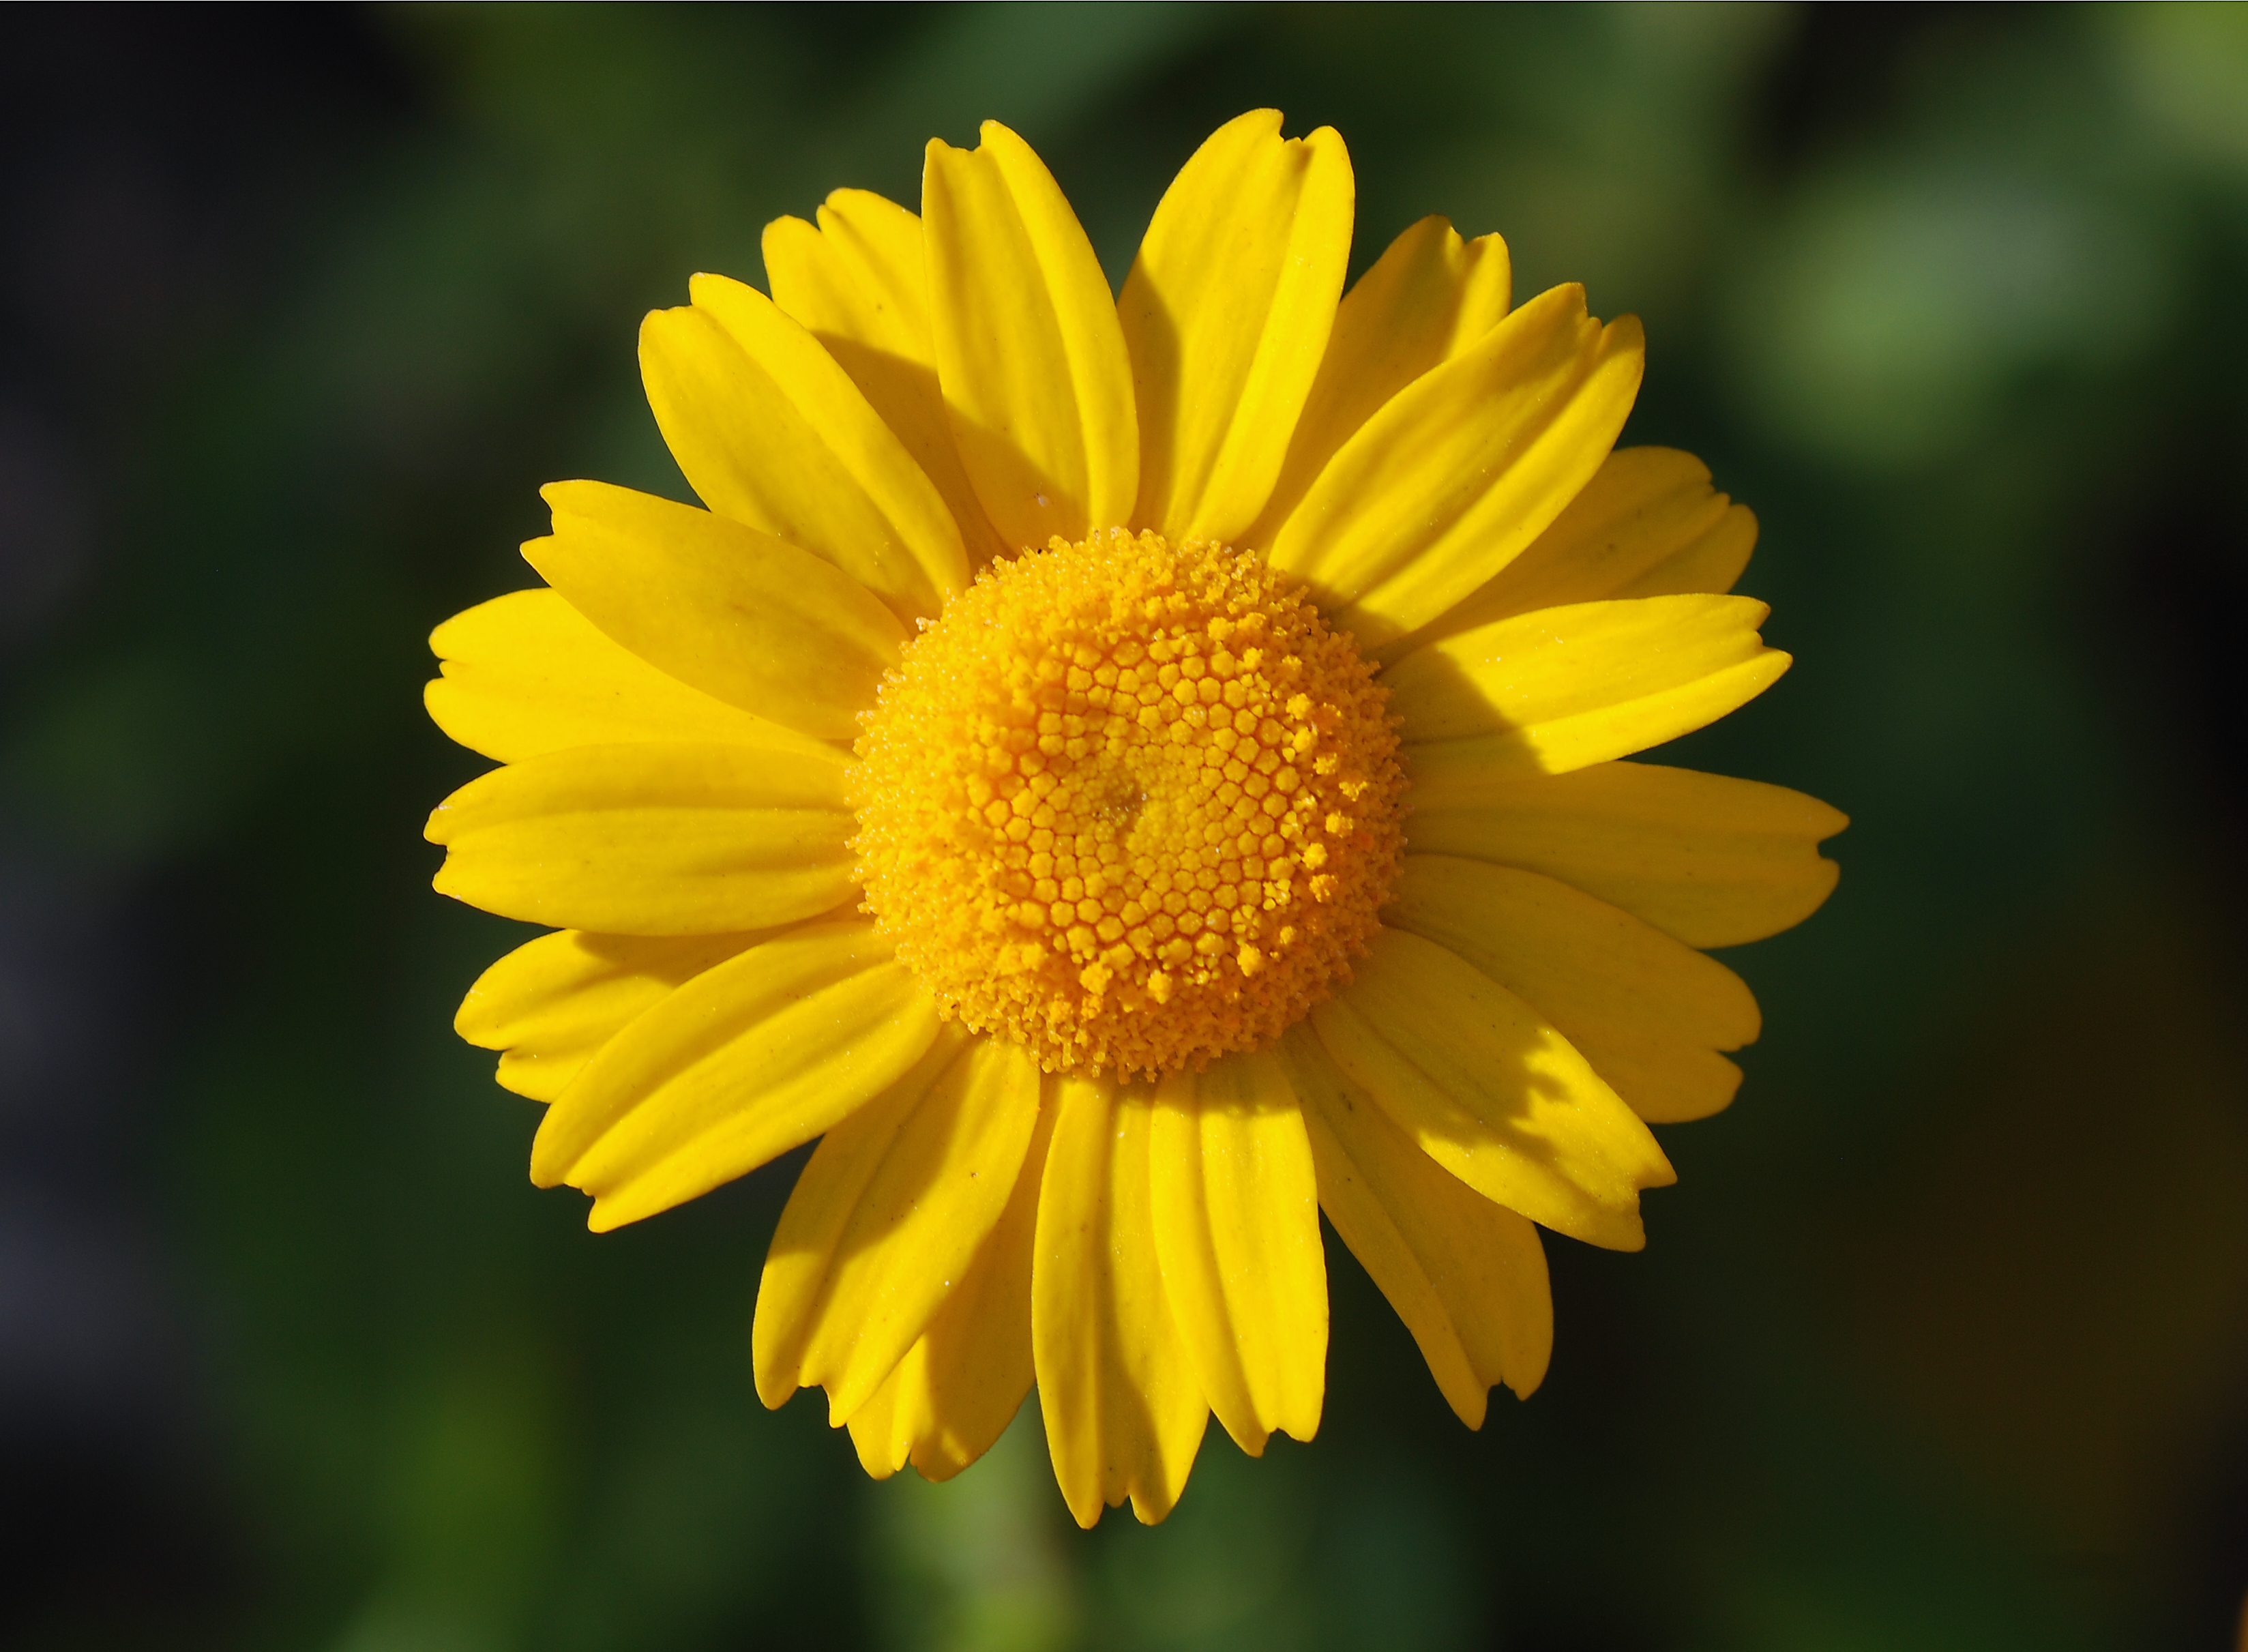 A yellow flower of Coleostephus myconis